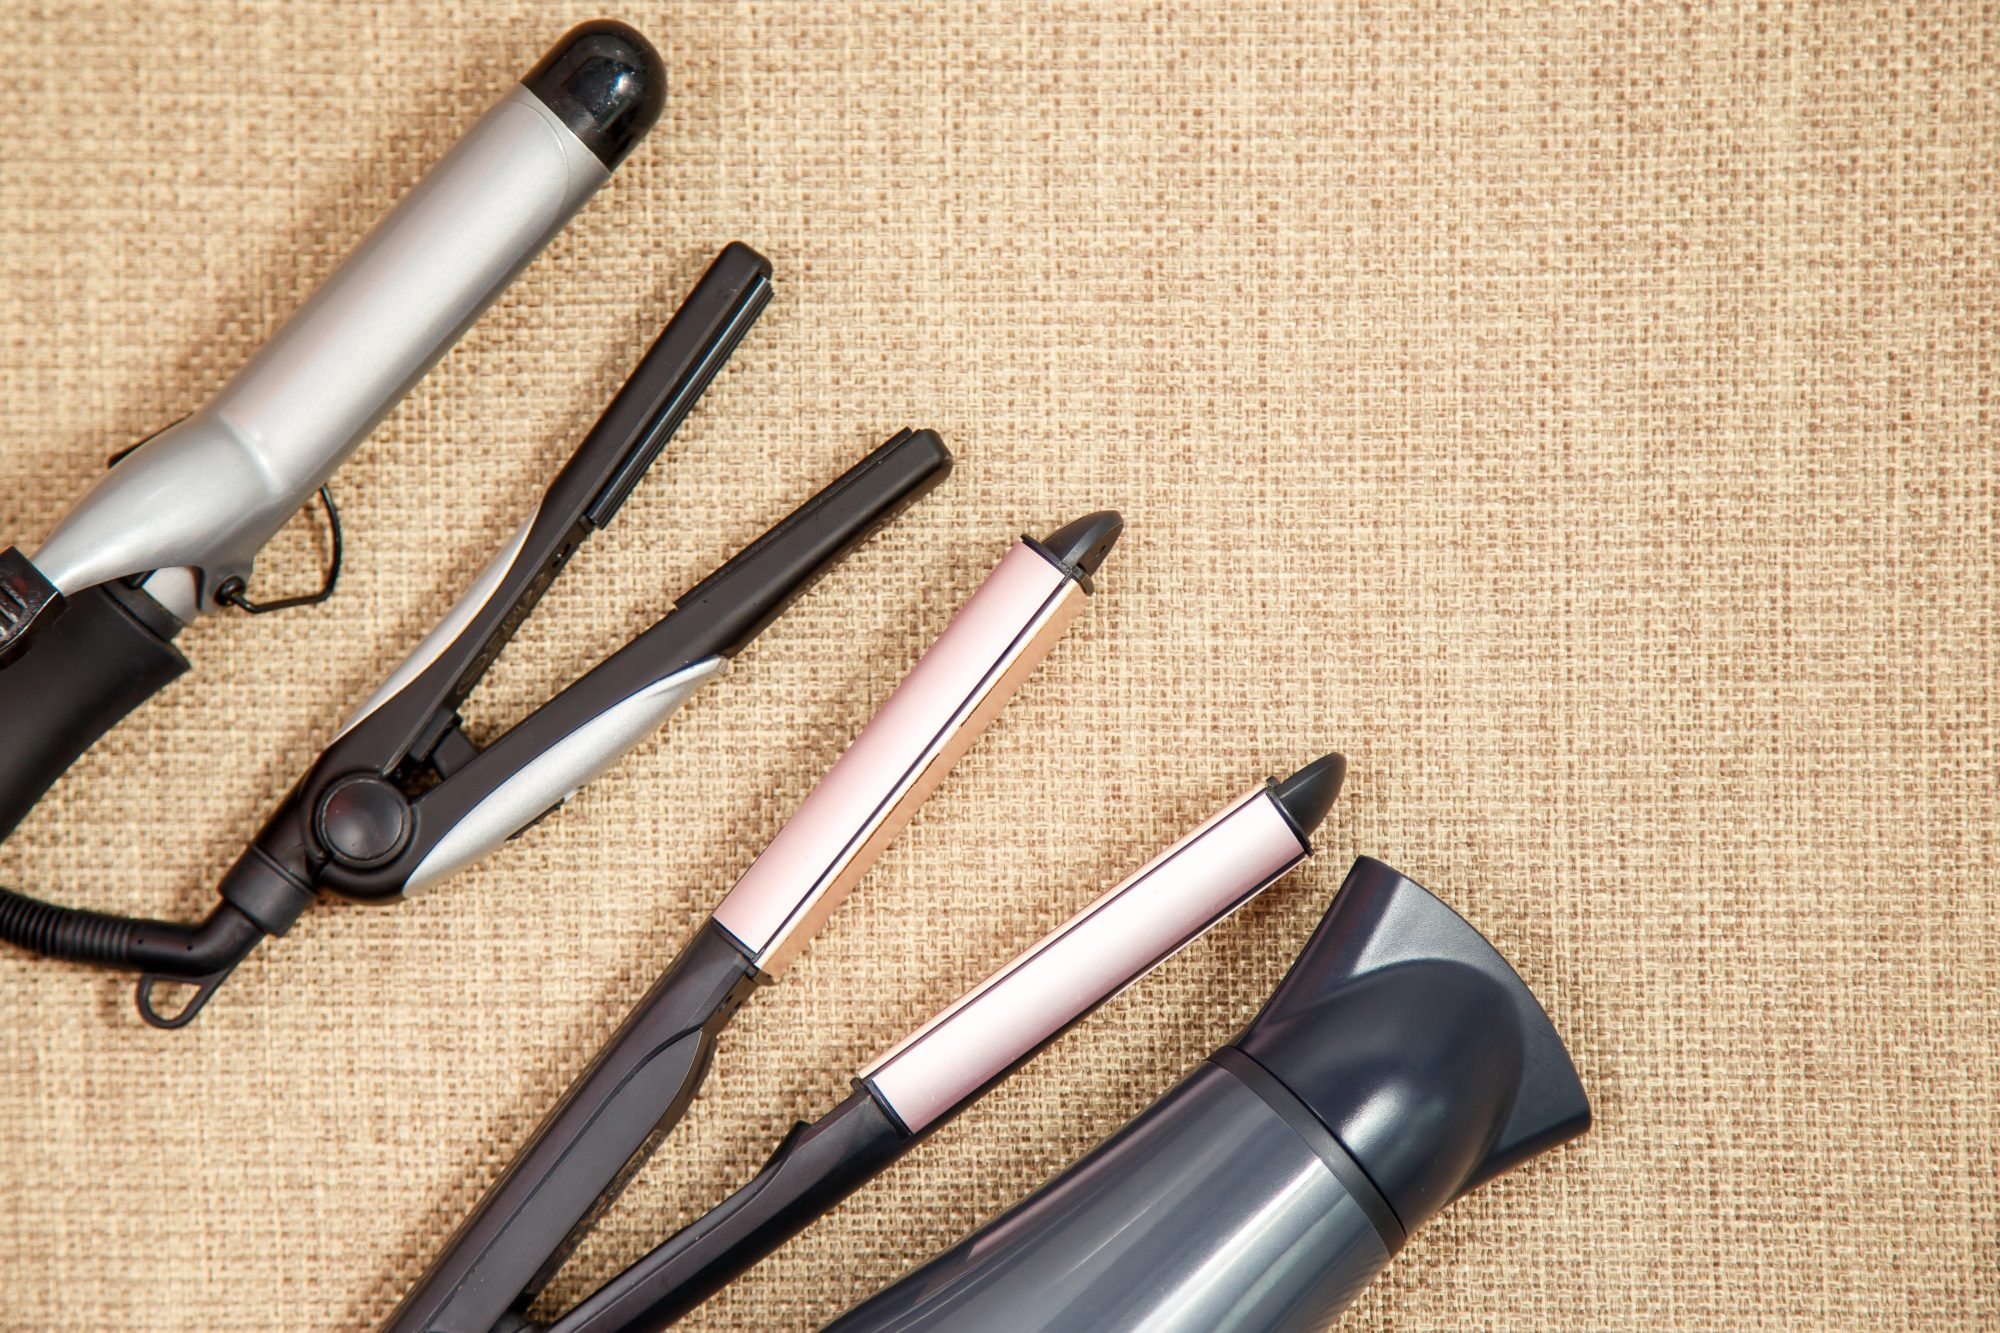 Collection of the professional hairdresser appliances - hair dryer, curling, corrugation, straightener top view